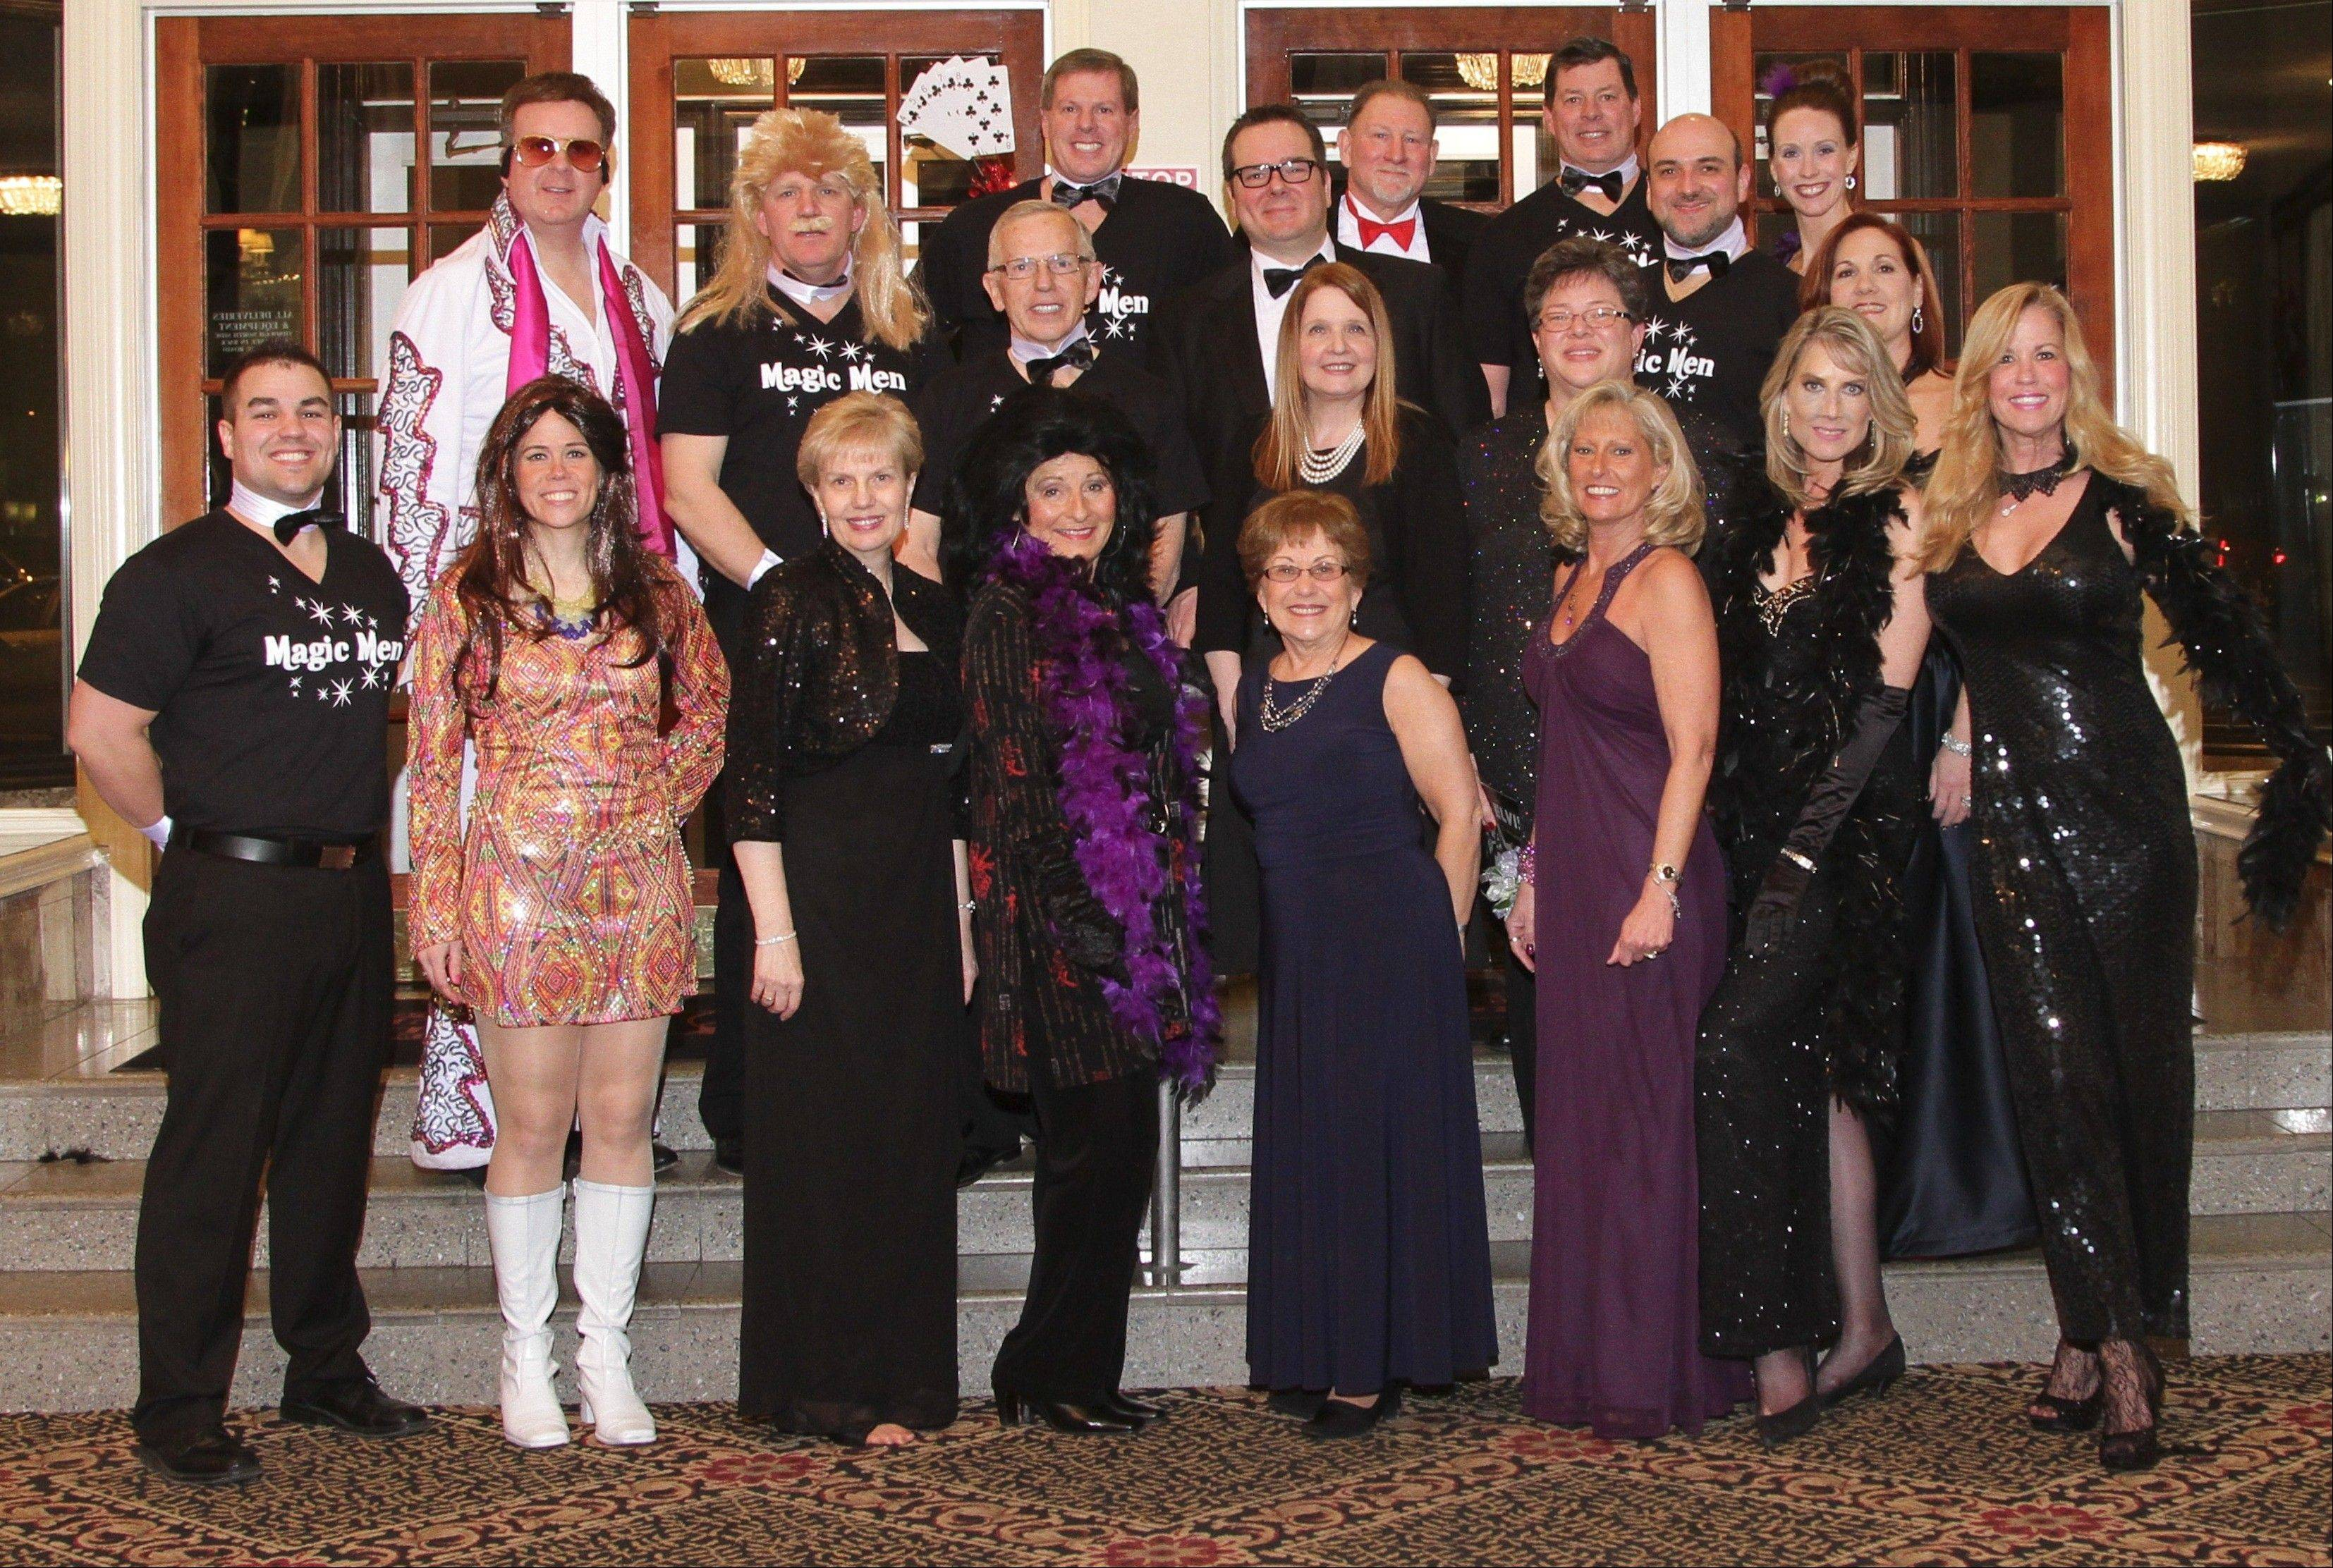 The Las Vegas Revue cast provided some of the most memorable entertainment of the evening at the Palatine Township Senior Citizens Council's 40th annual gala.